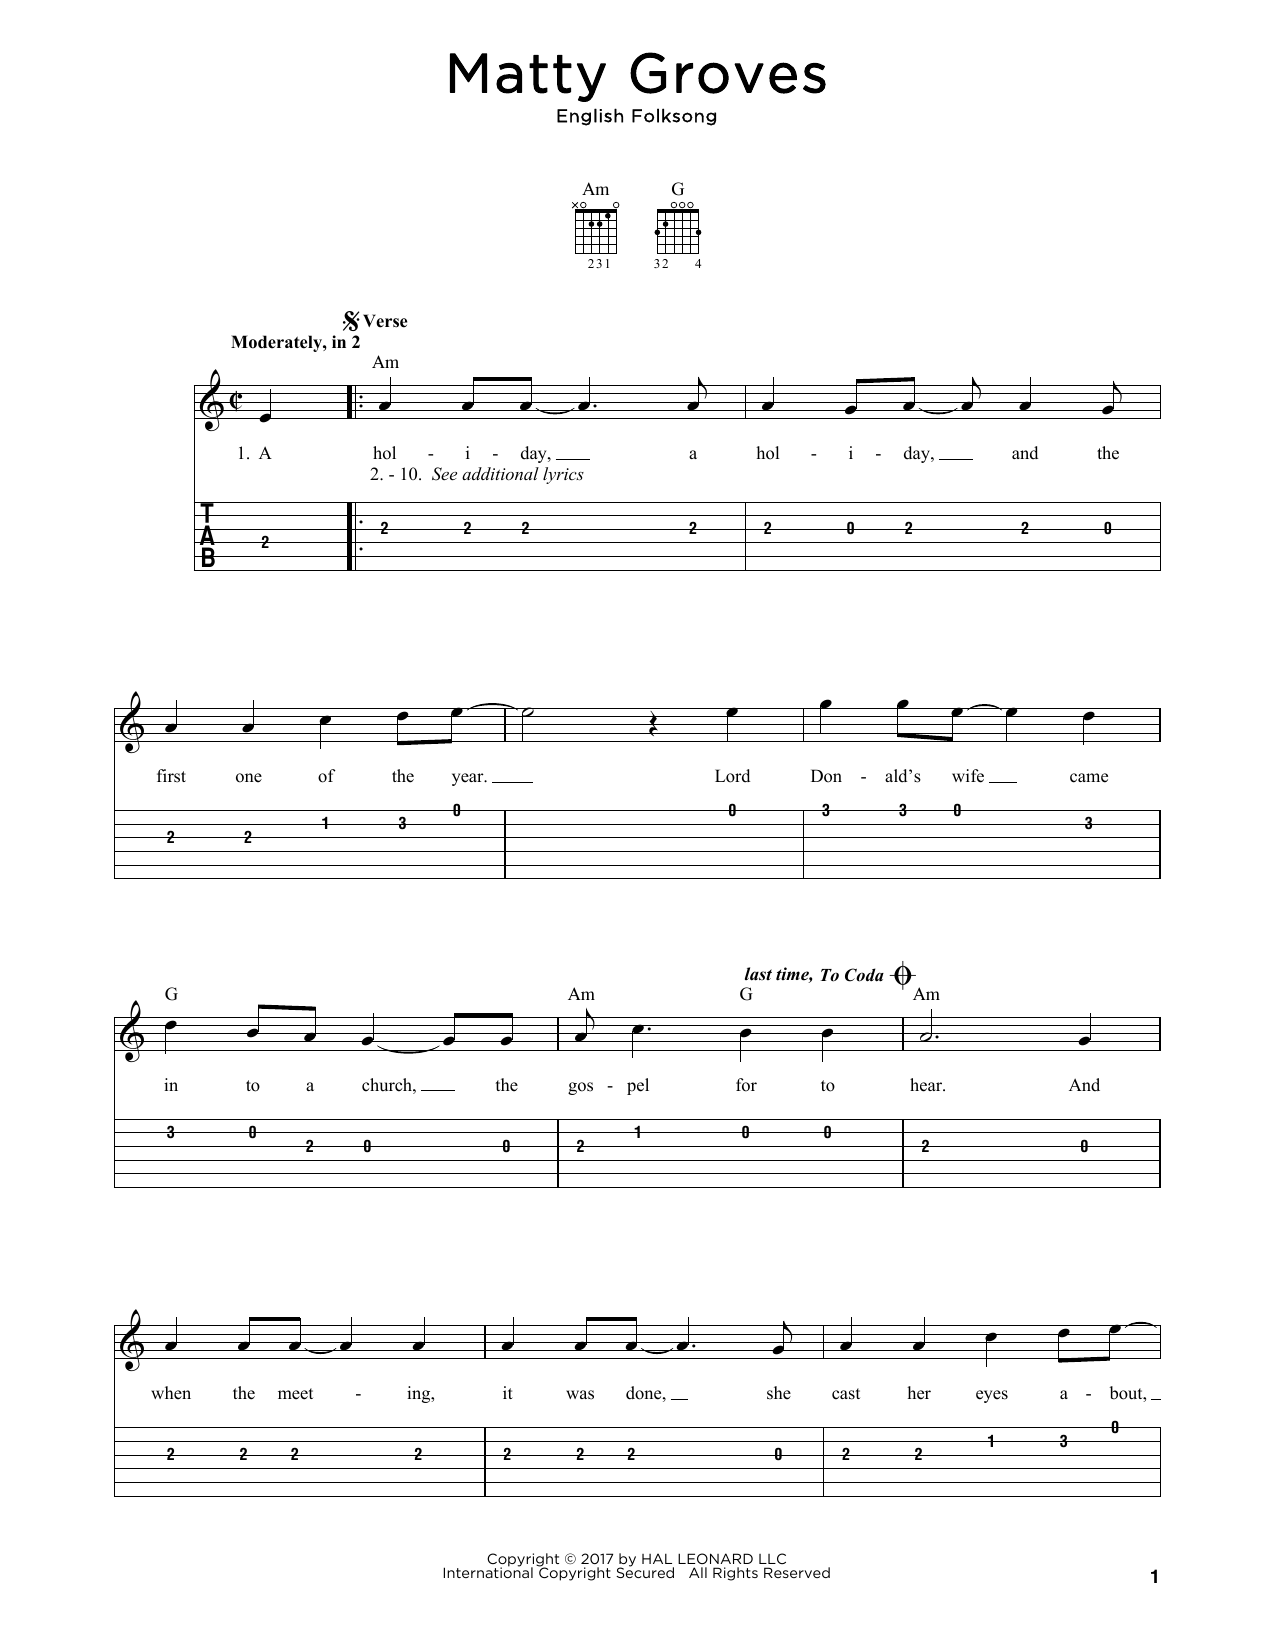 English Folksong Matty Groves sheet music notes and chords. Download Printable PDF.